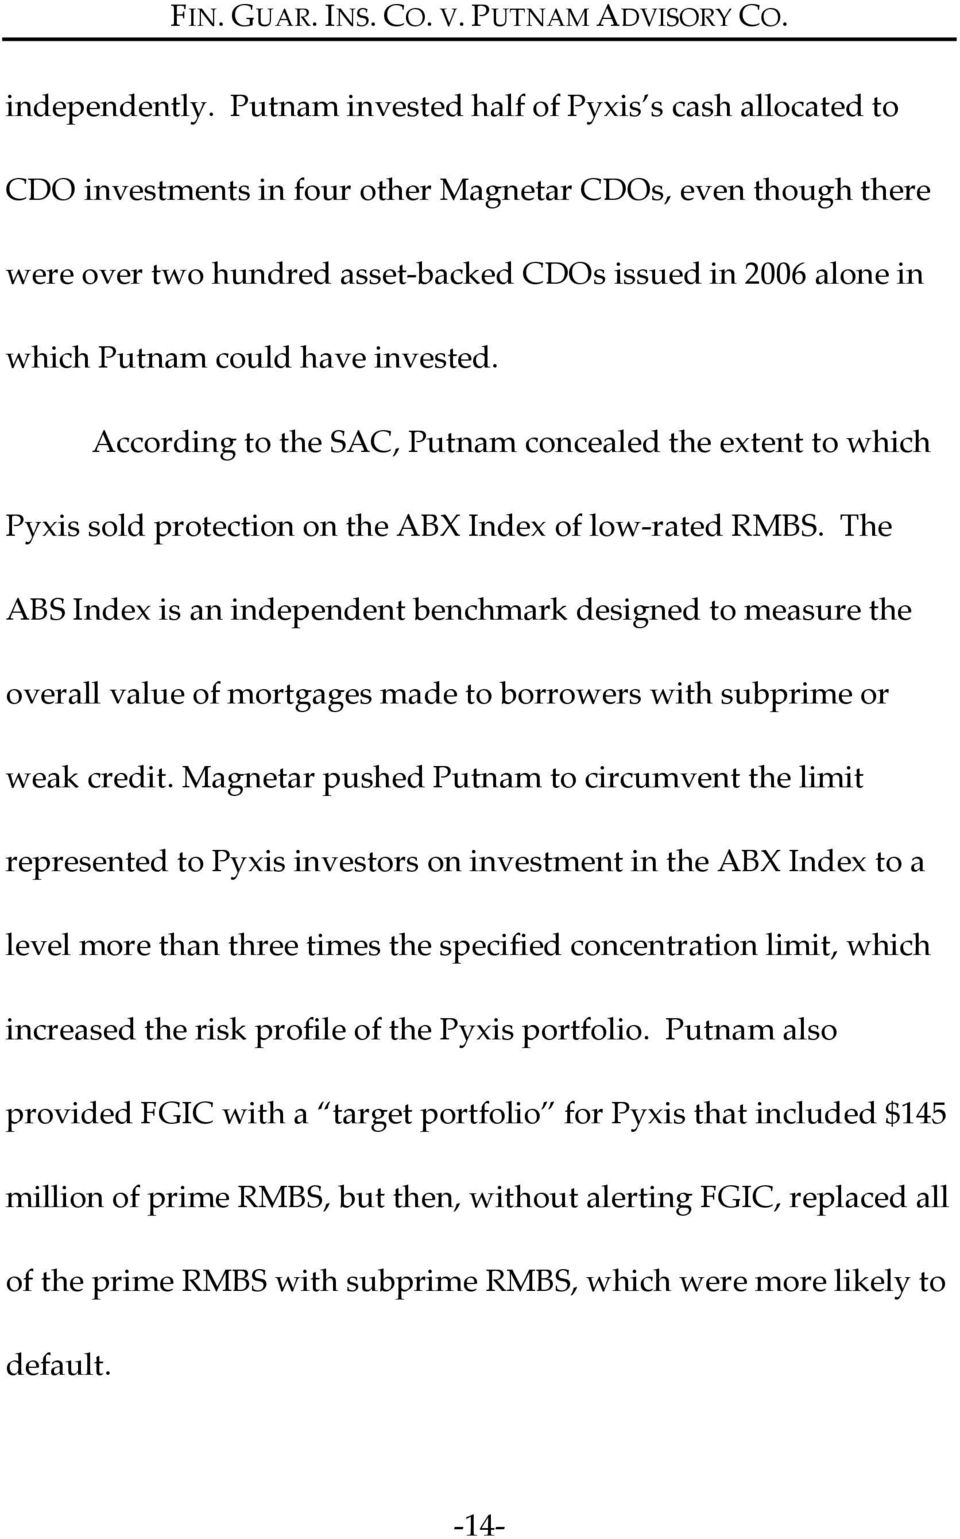 have invested. According to the SAC, Putnam concealed the extent to which Pyxis sold protection on the ABX Index of low rated RMBS.